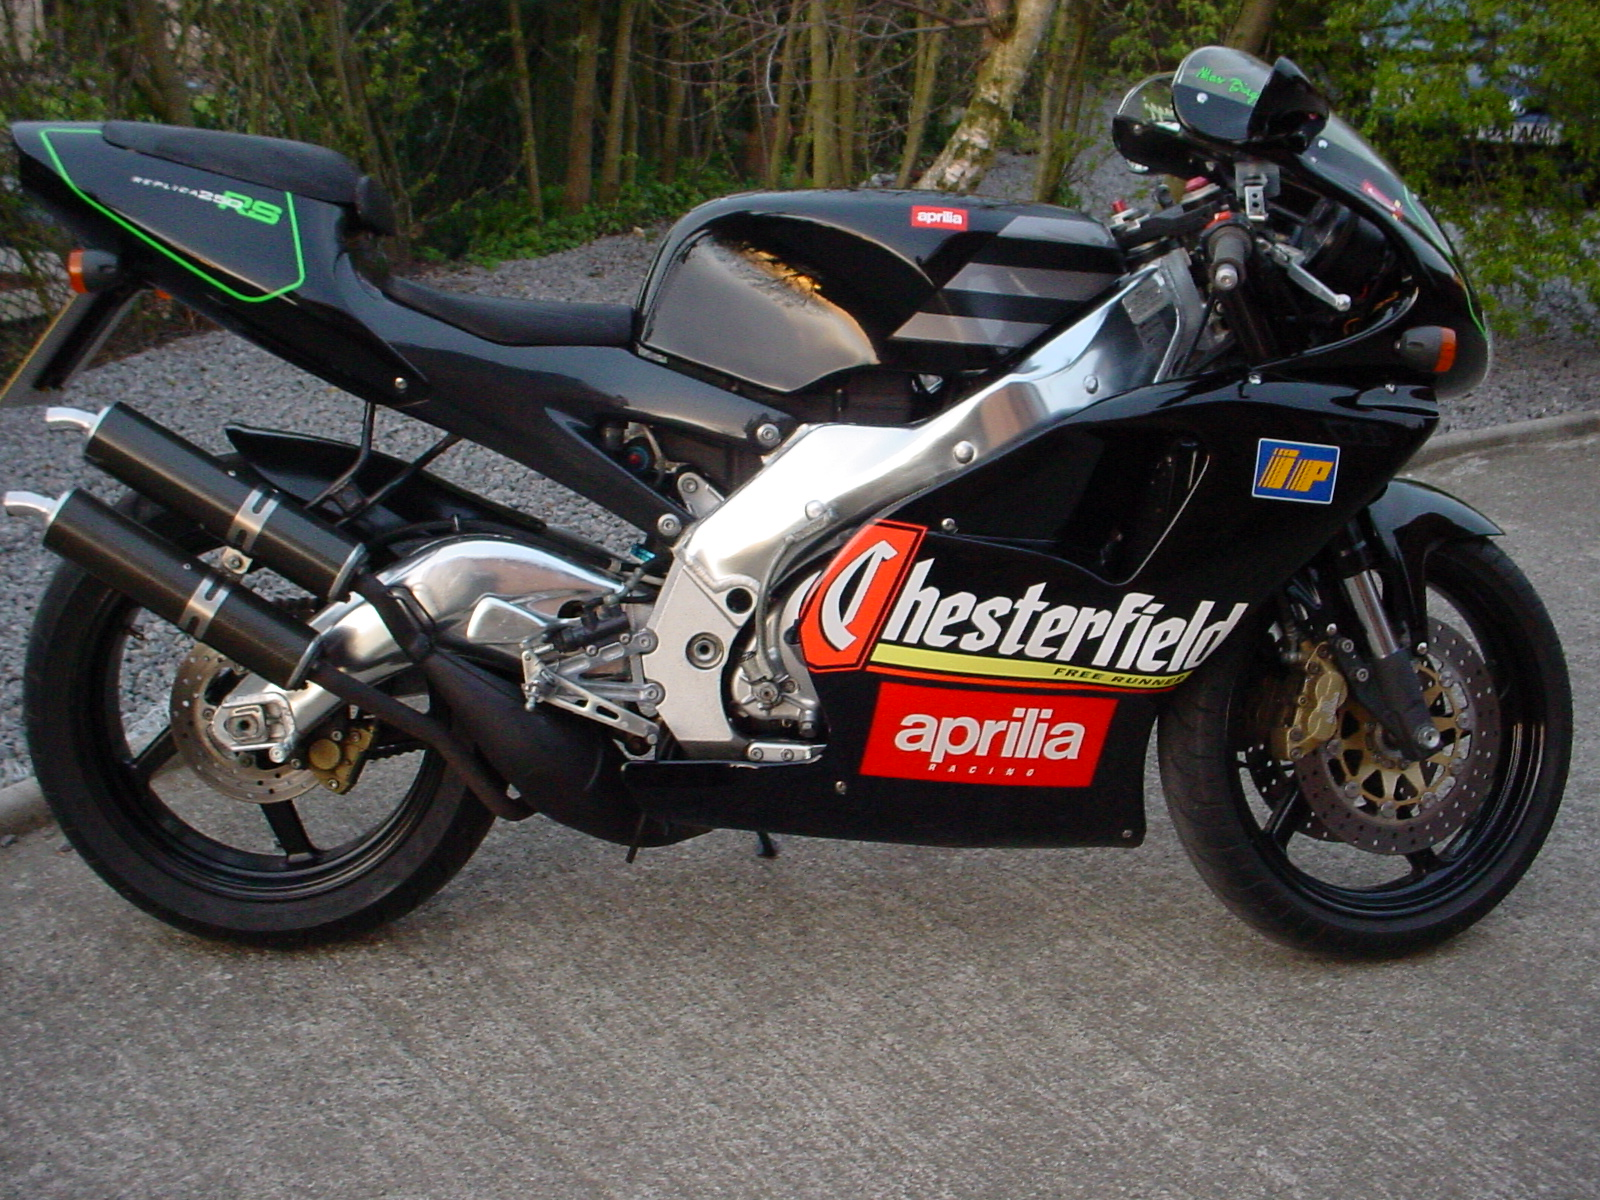 for sale aprilia rs250 chesterfield 5000 miles need an. Black Bedroom Furniture Sets. Home Design Ideas